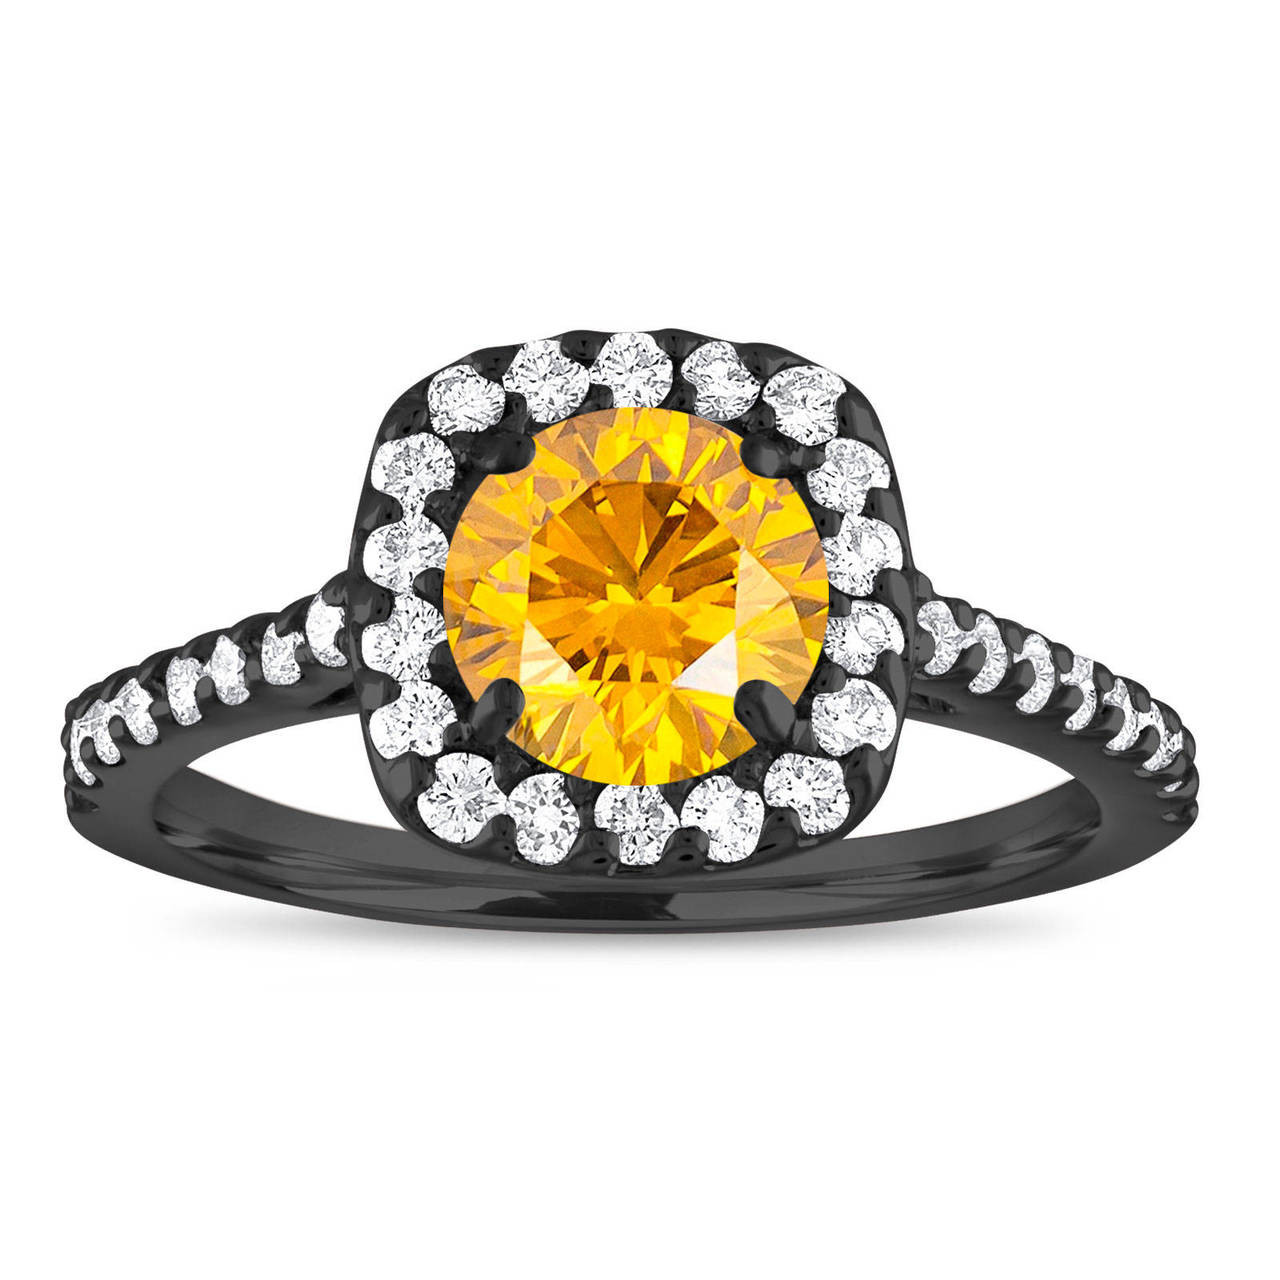 Yellow Diamond Engagement Ring Vintage Canary Yellow Diamond Ring Cushion Cut Ring 1 58 Carat 14k Black Gold Unique Certified Handmade